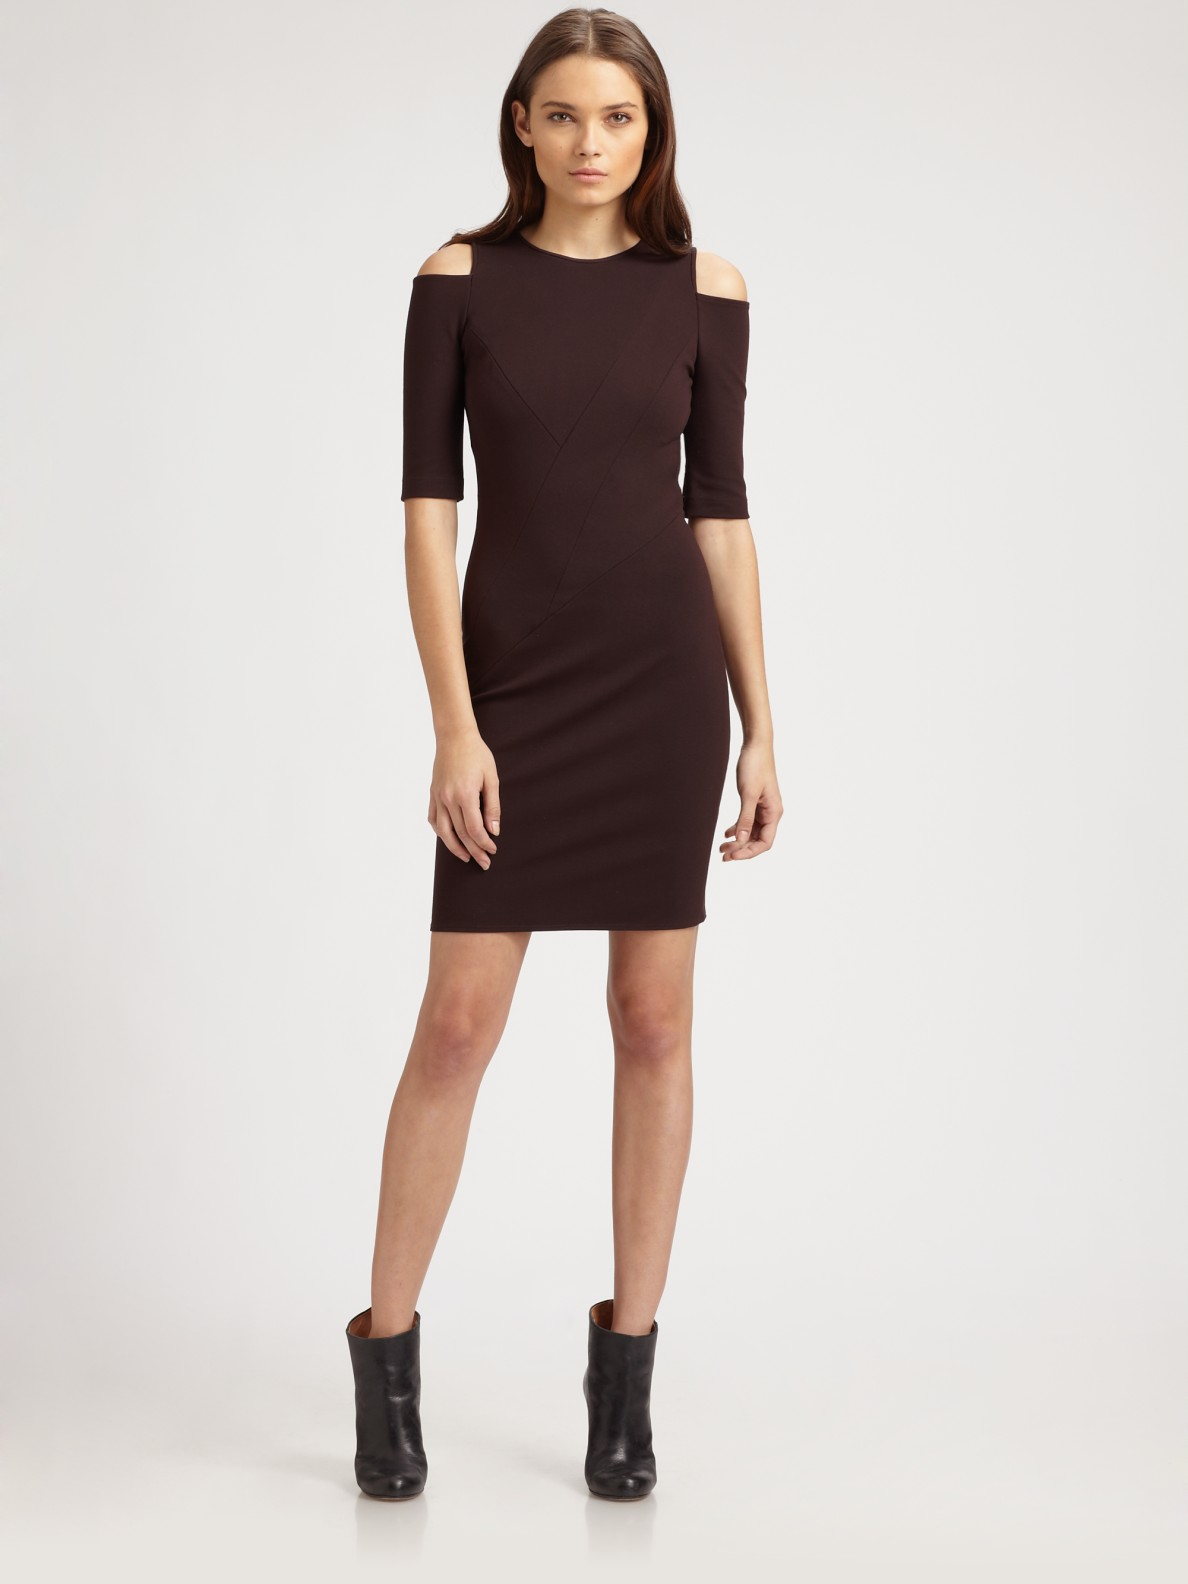 Cut Out Shoulder Dress